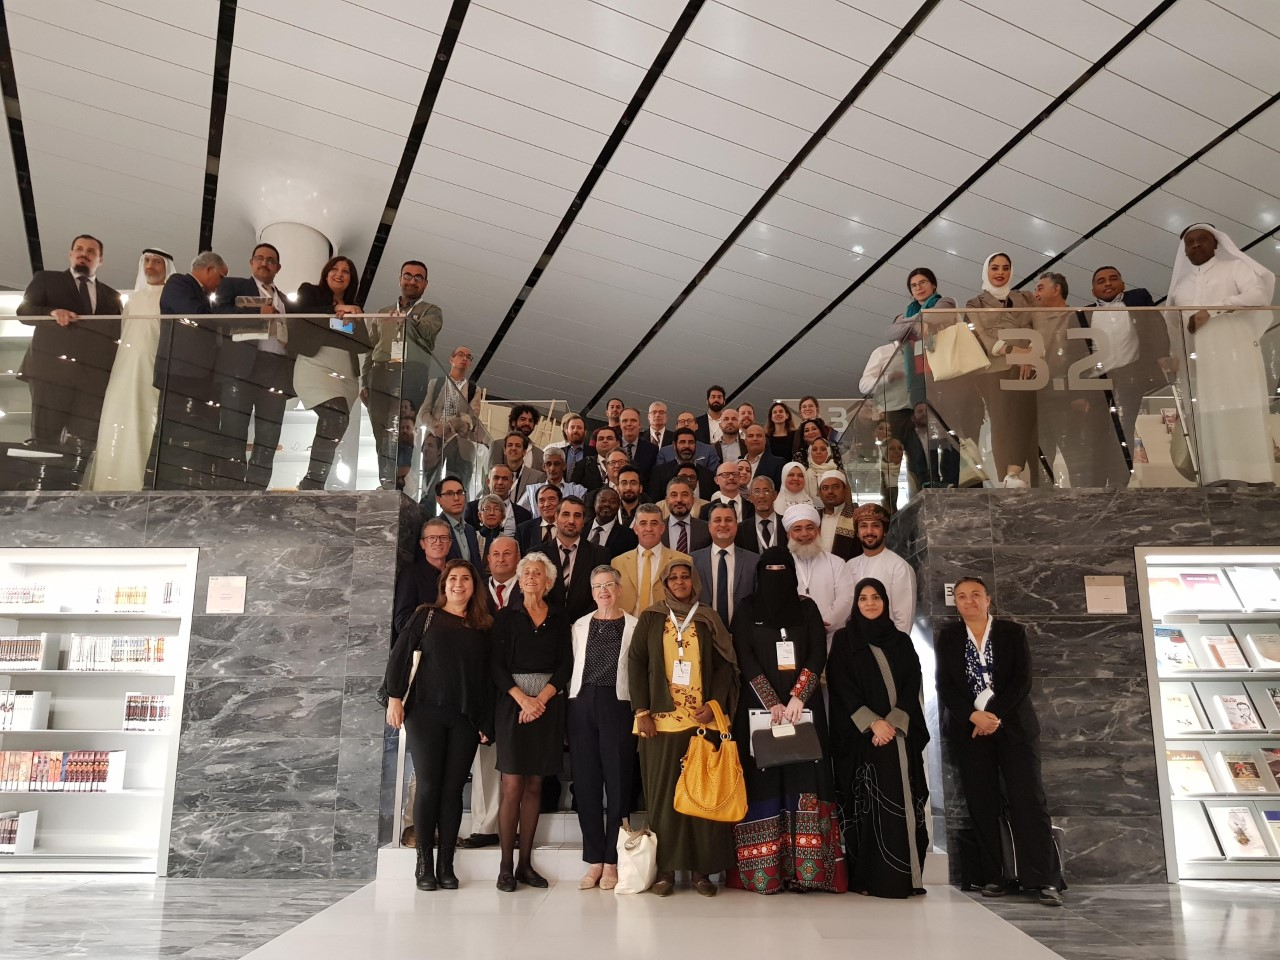 All conference delegates posing together at the Qatar National Library.